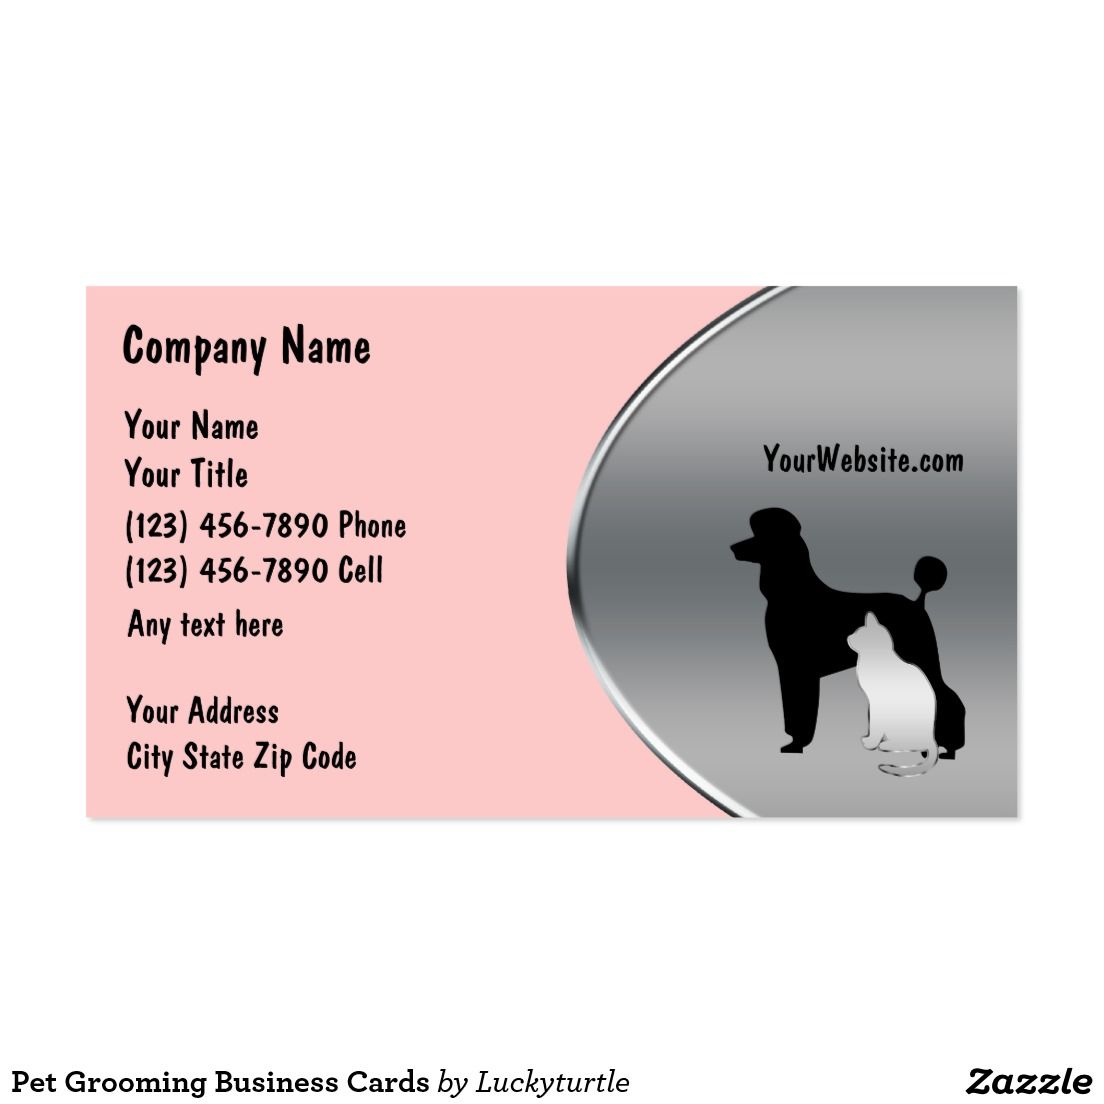 Grooming Business Cards